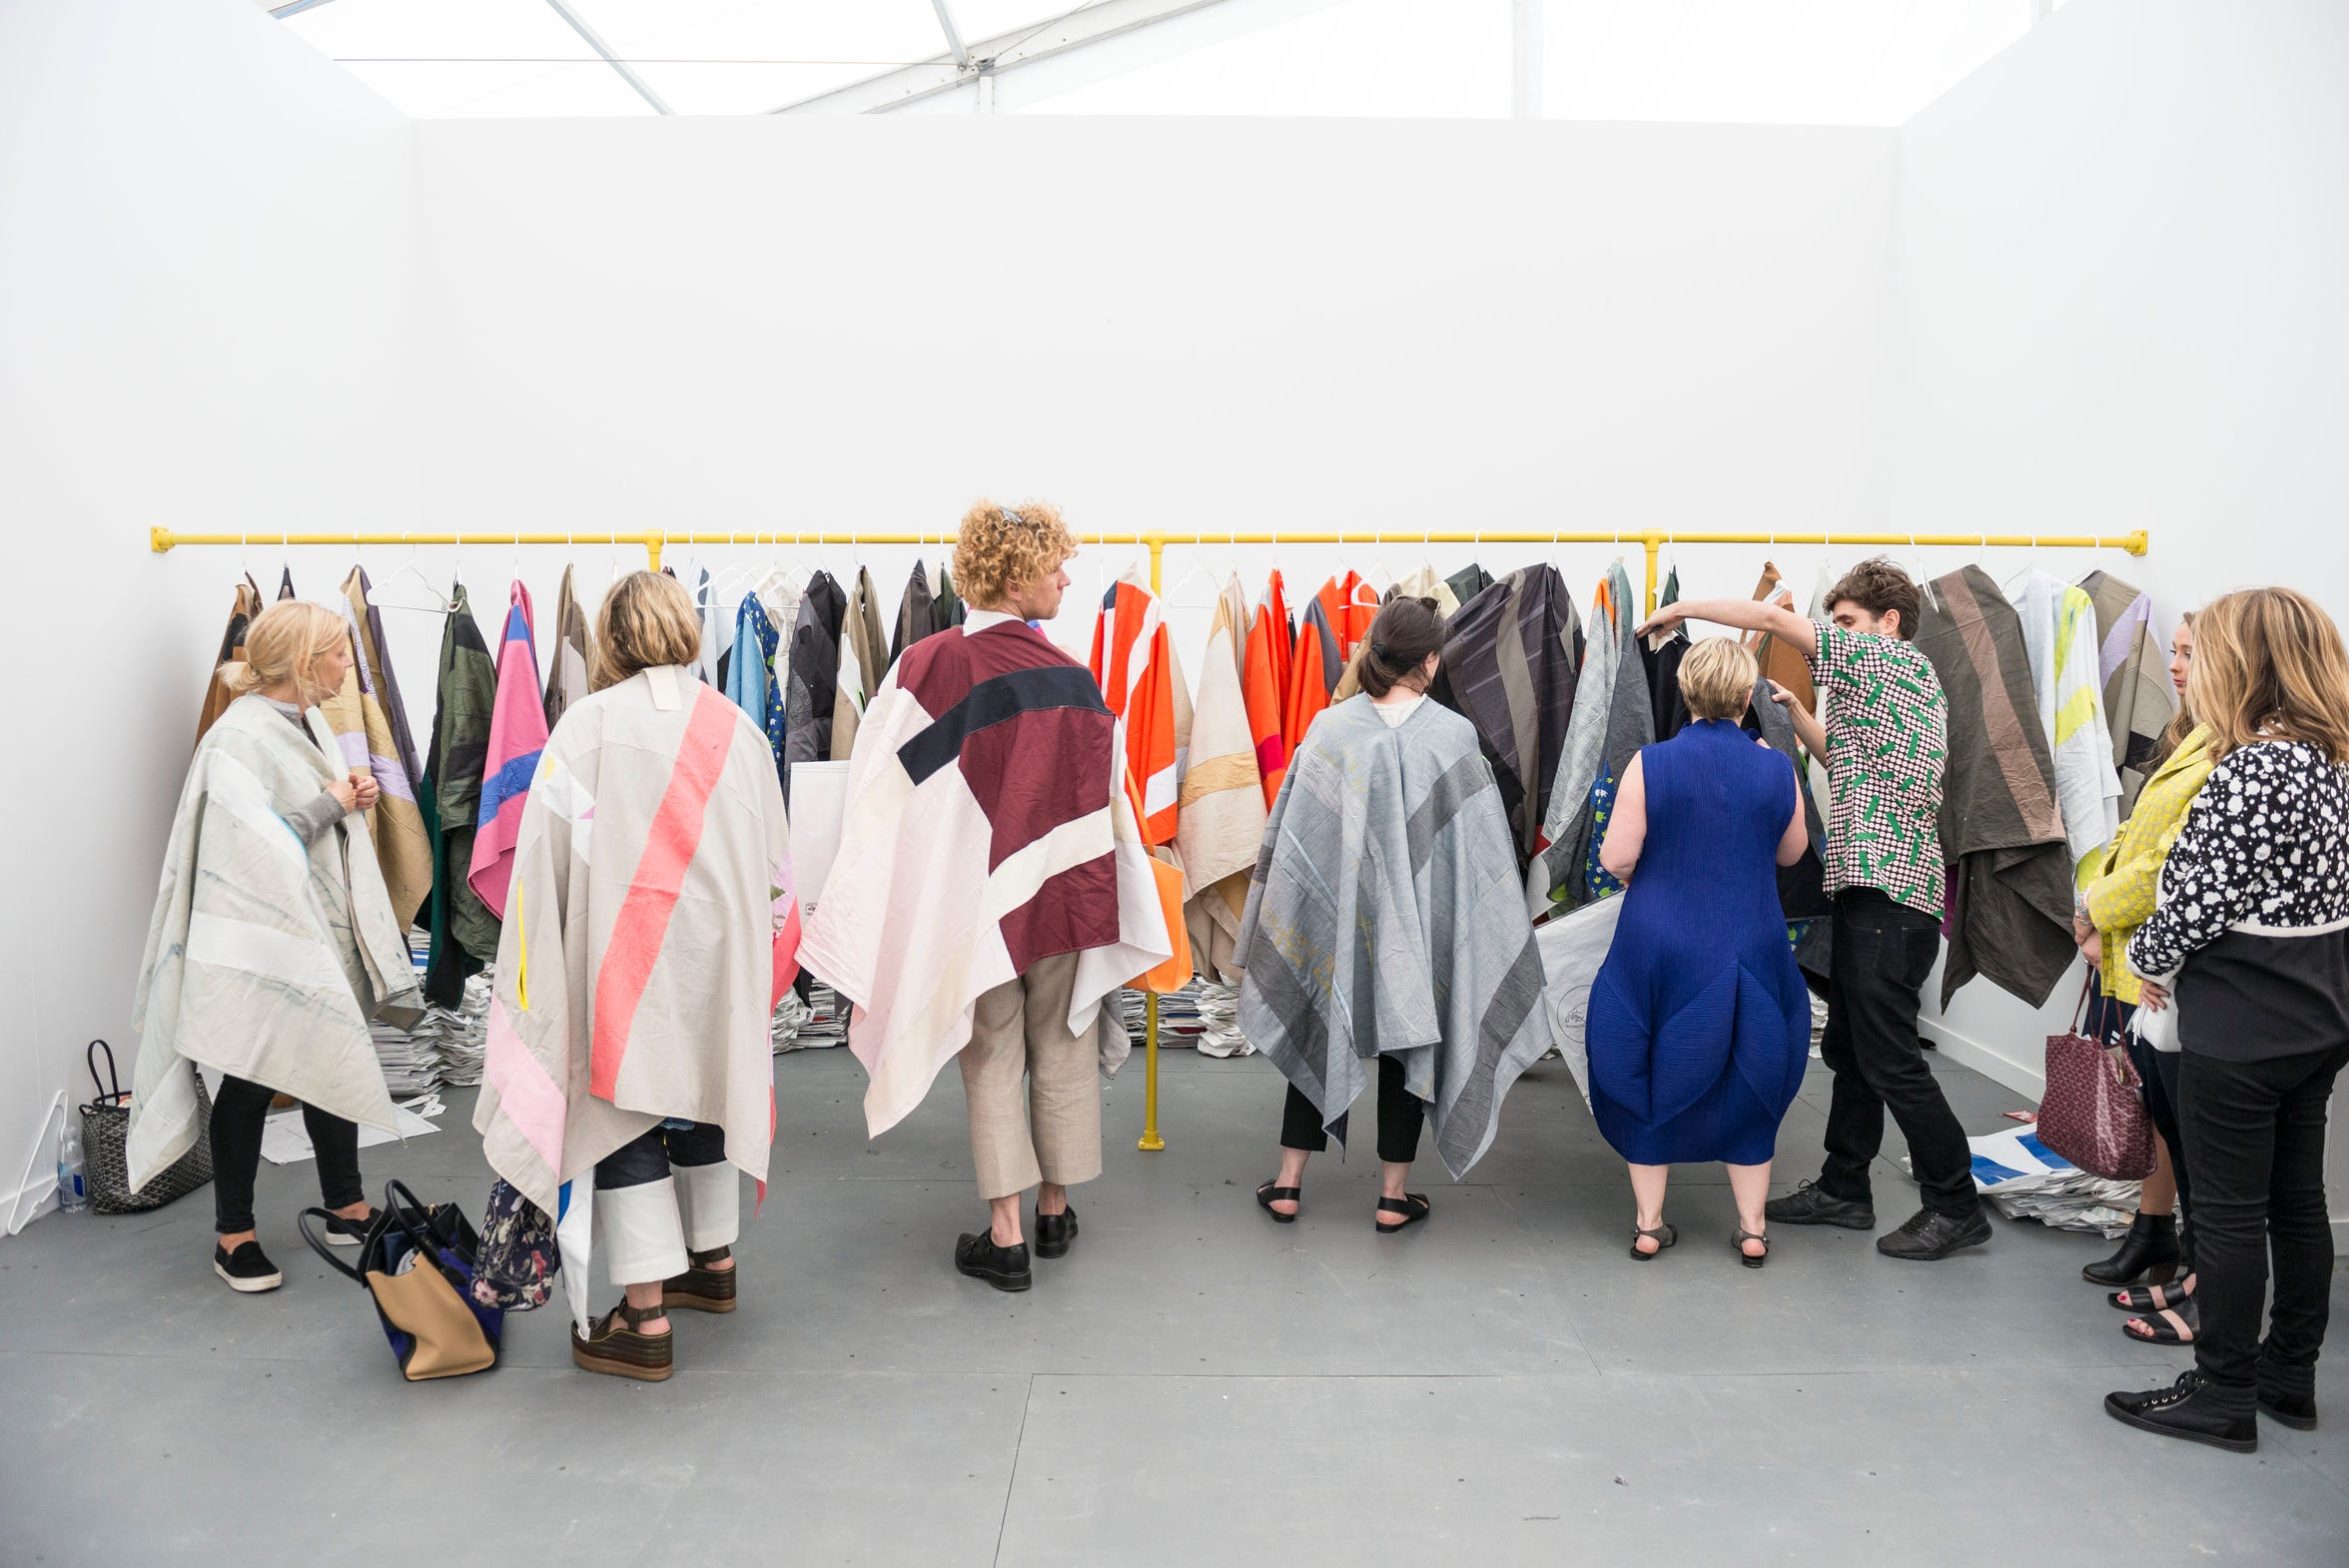 """Wearing – watching,"" 2015 by Pia Camil, commissioned and produced by Frieze Art Inc for Frieze Projects New York."